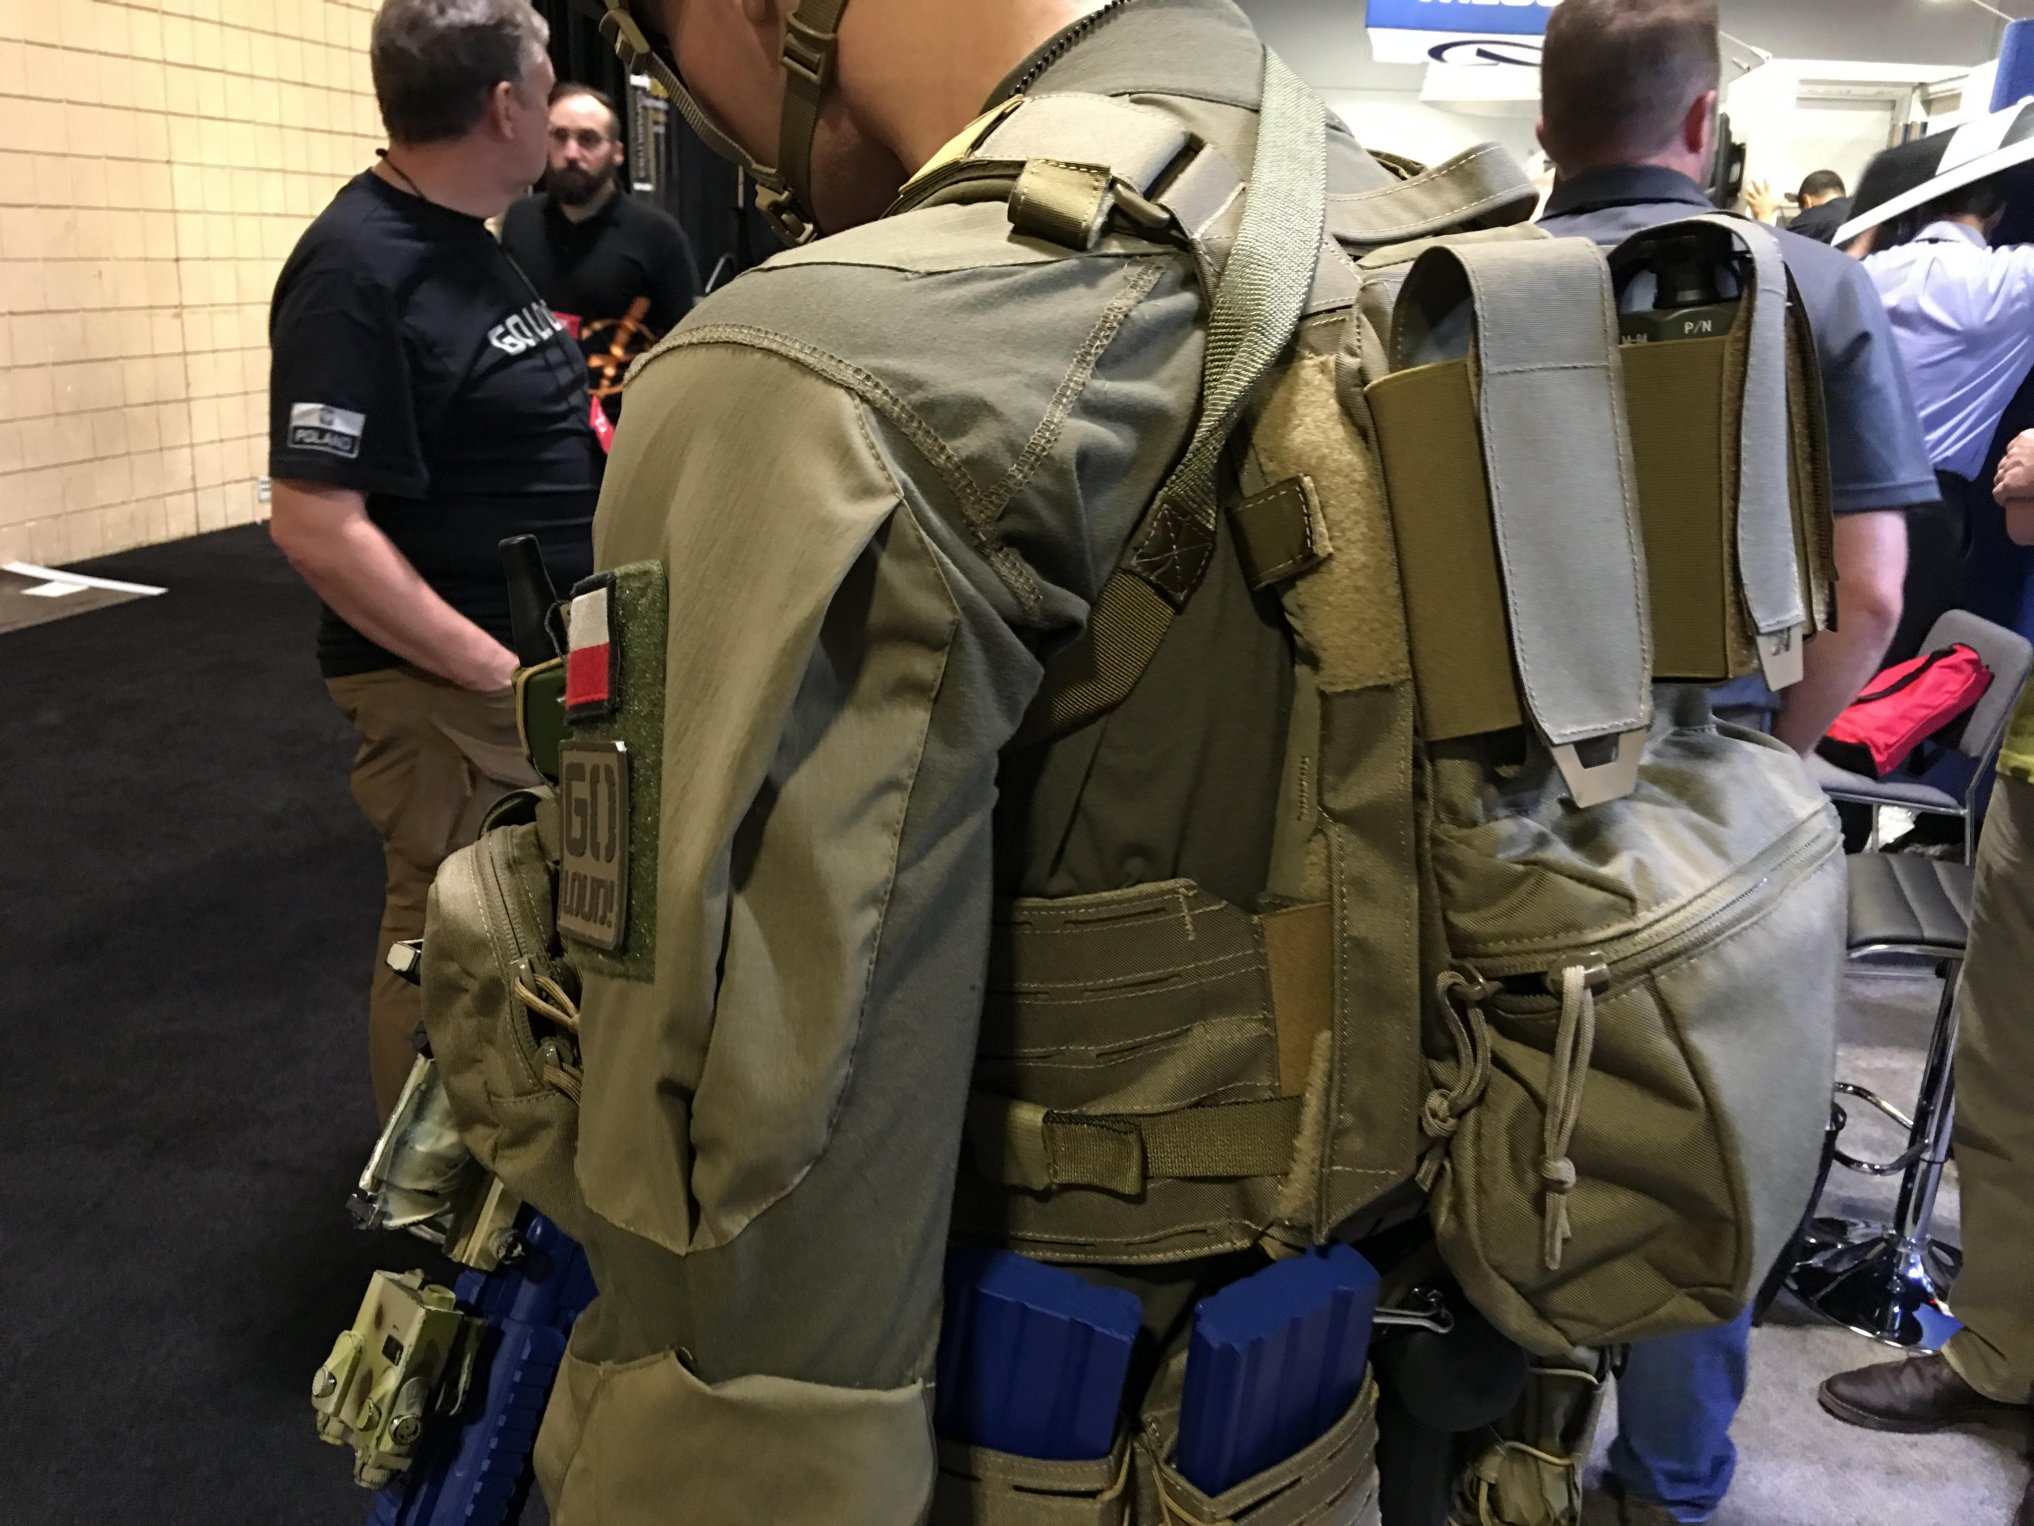 e3f93cdc03b9 By the way, Direct Action is based out of Poland, but they recently reached  an OEM agreement with Tactical Tailor to produce Berry-compliant combat/ tactical ...